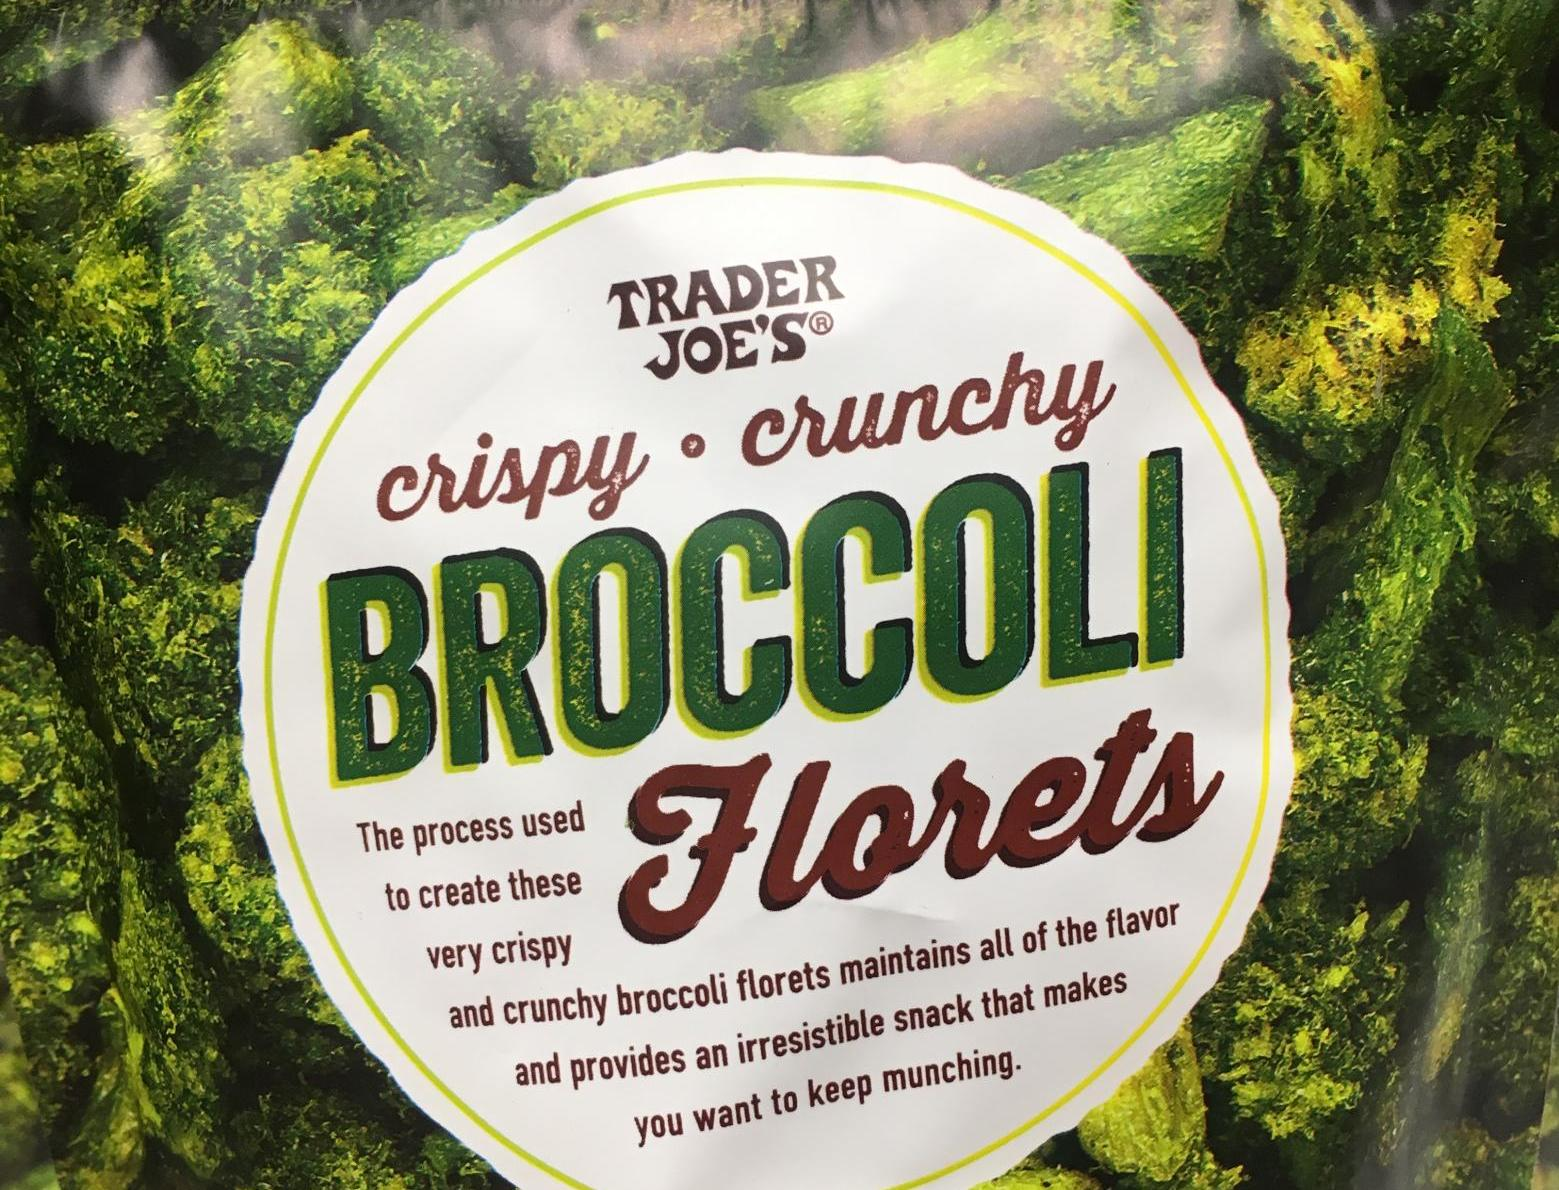 11 Trader Joe's snacks that pack a serious protein punch